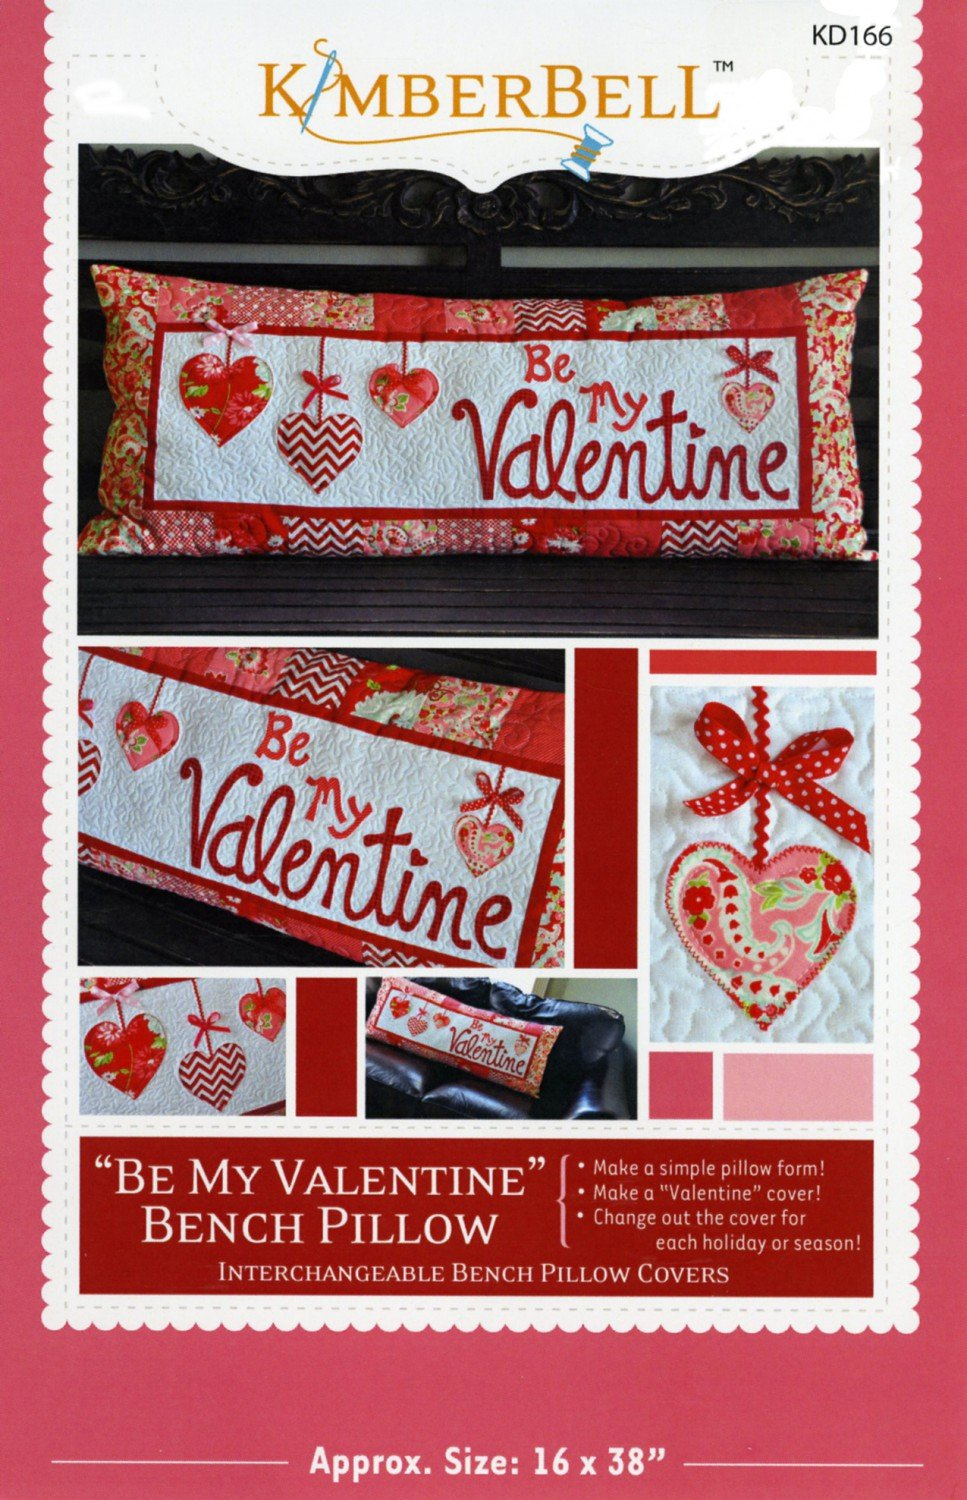 Be My Valentine Bench Pillow by KimberBell